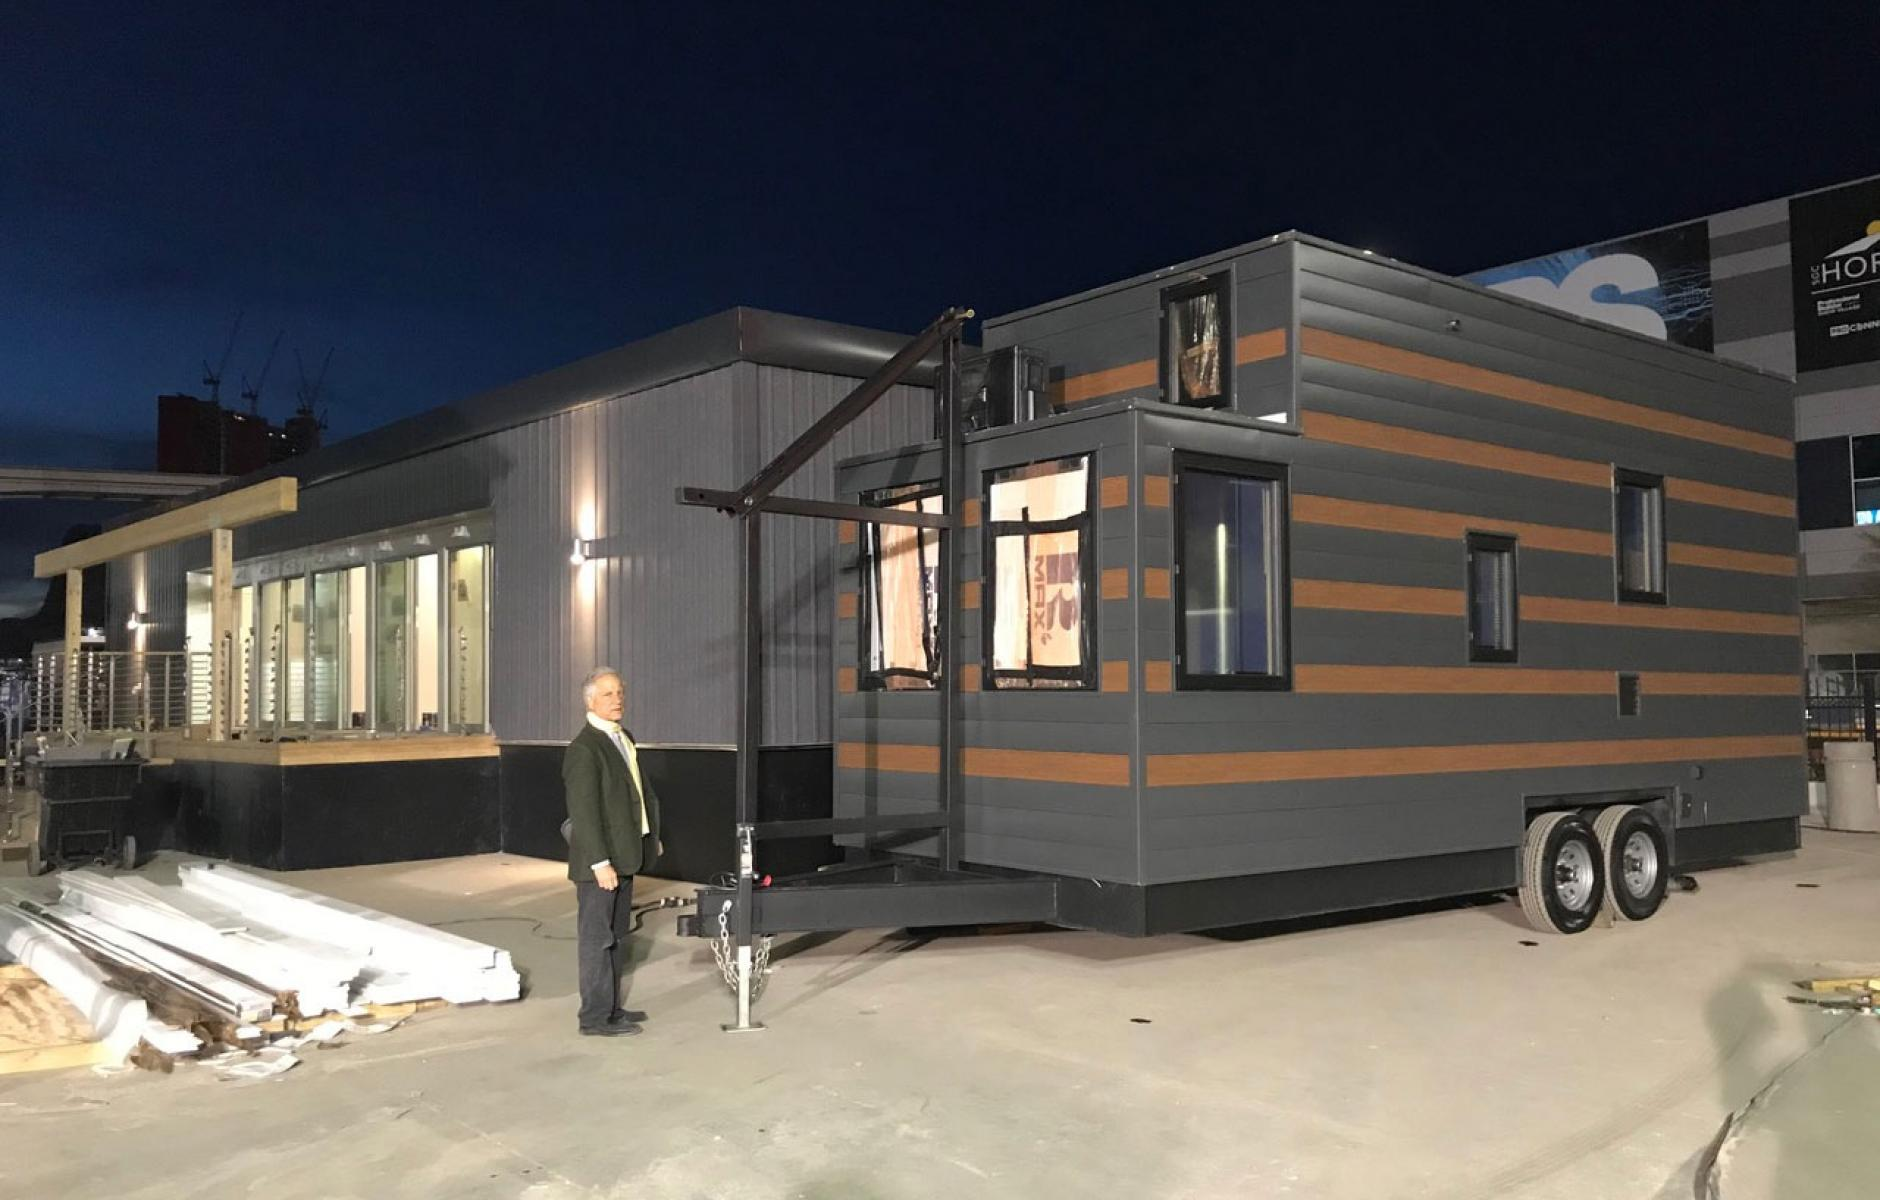 Tiny house and Mid-Century Modern trailer for affordable housing  CNU